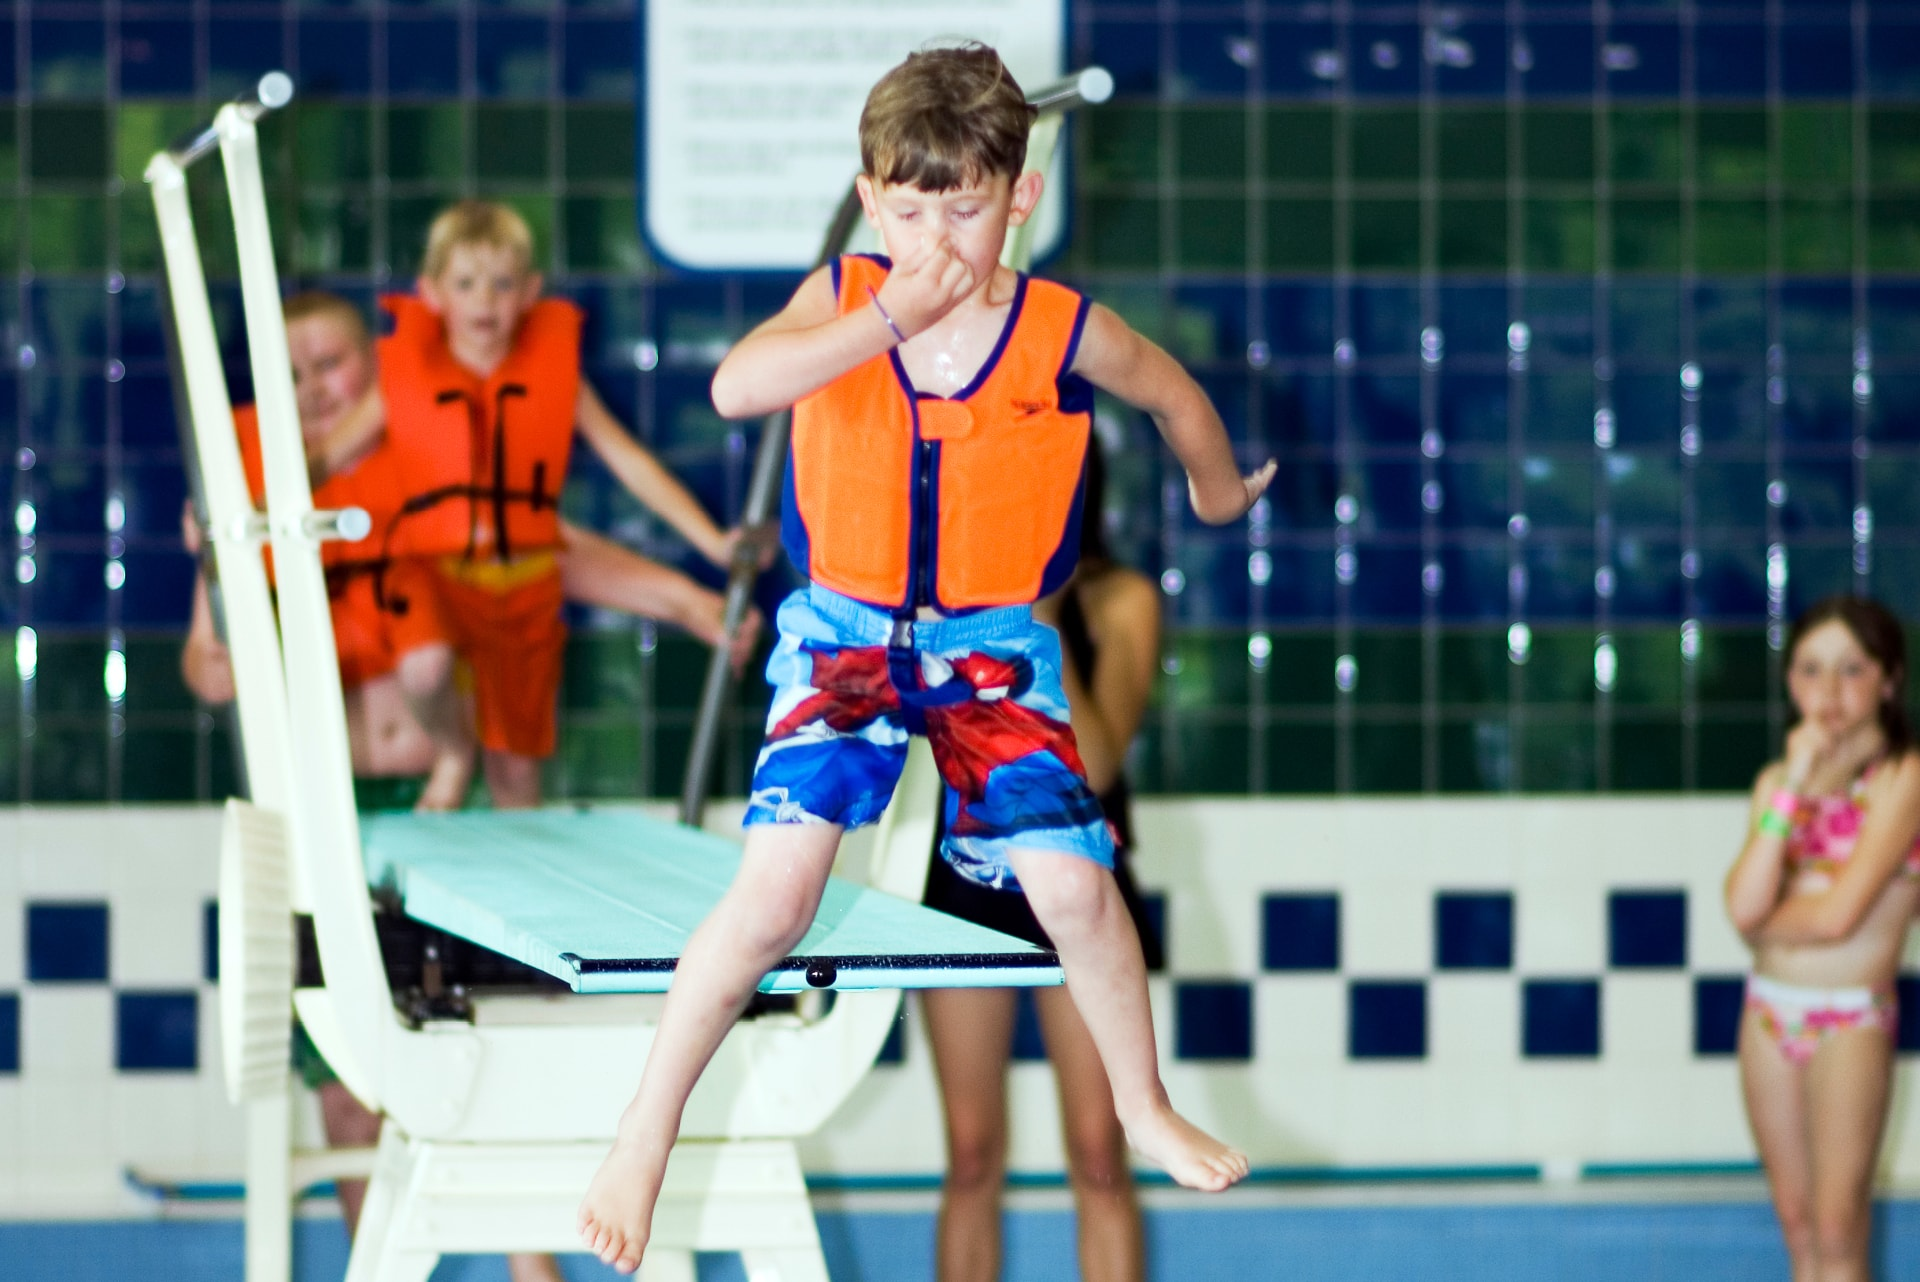 Child jumping off diving board.